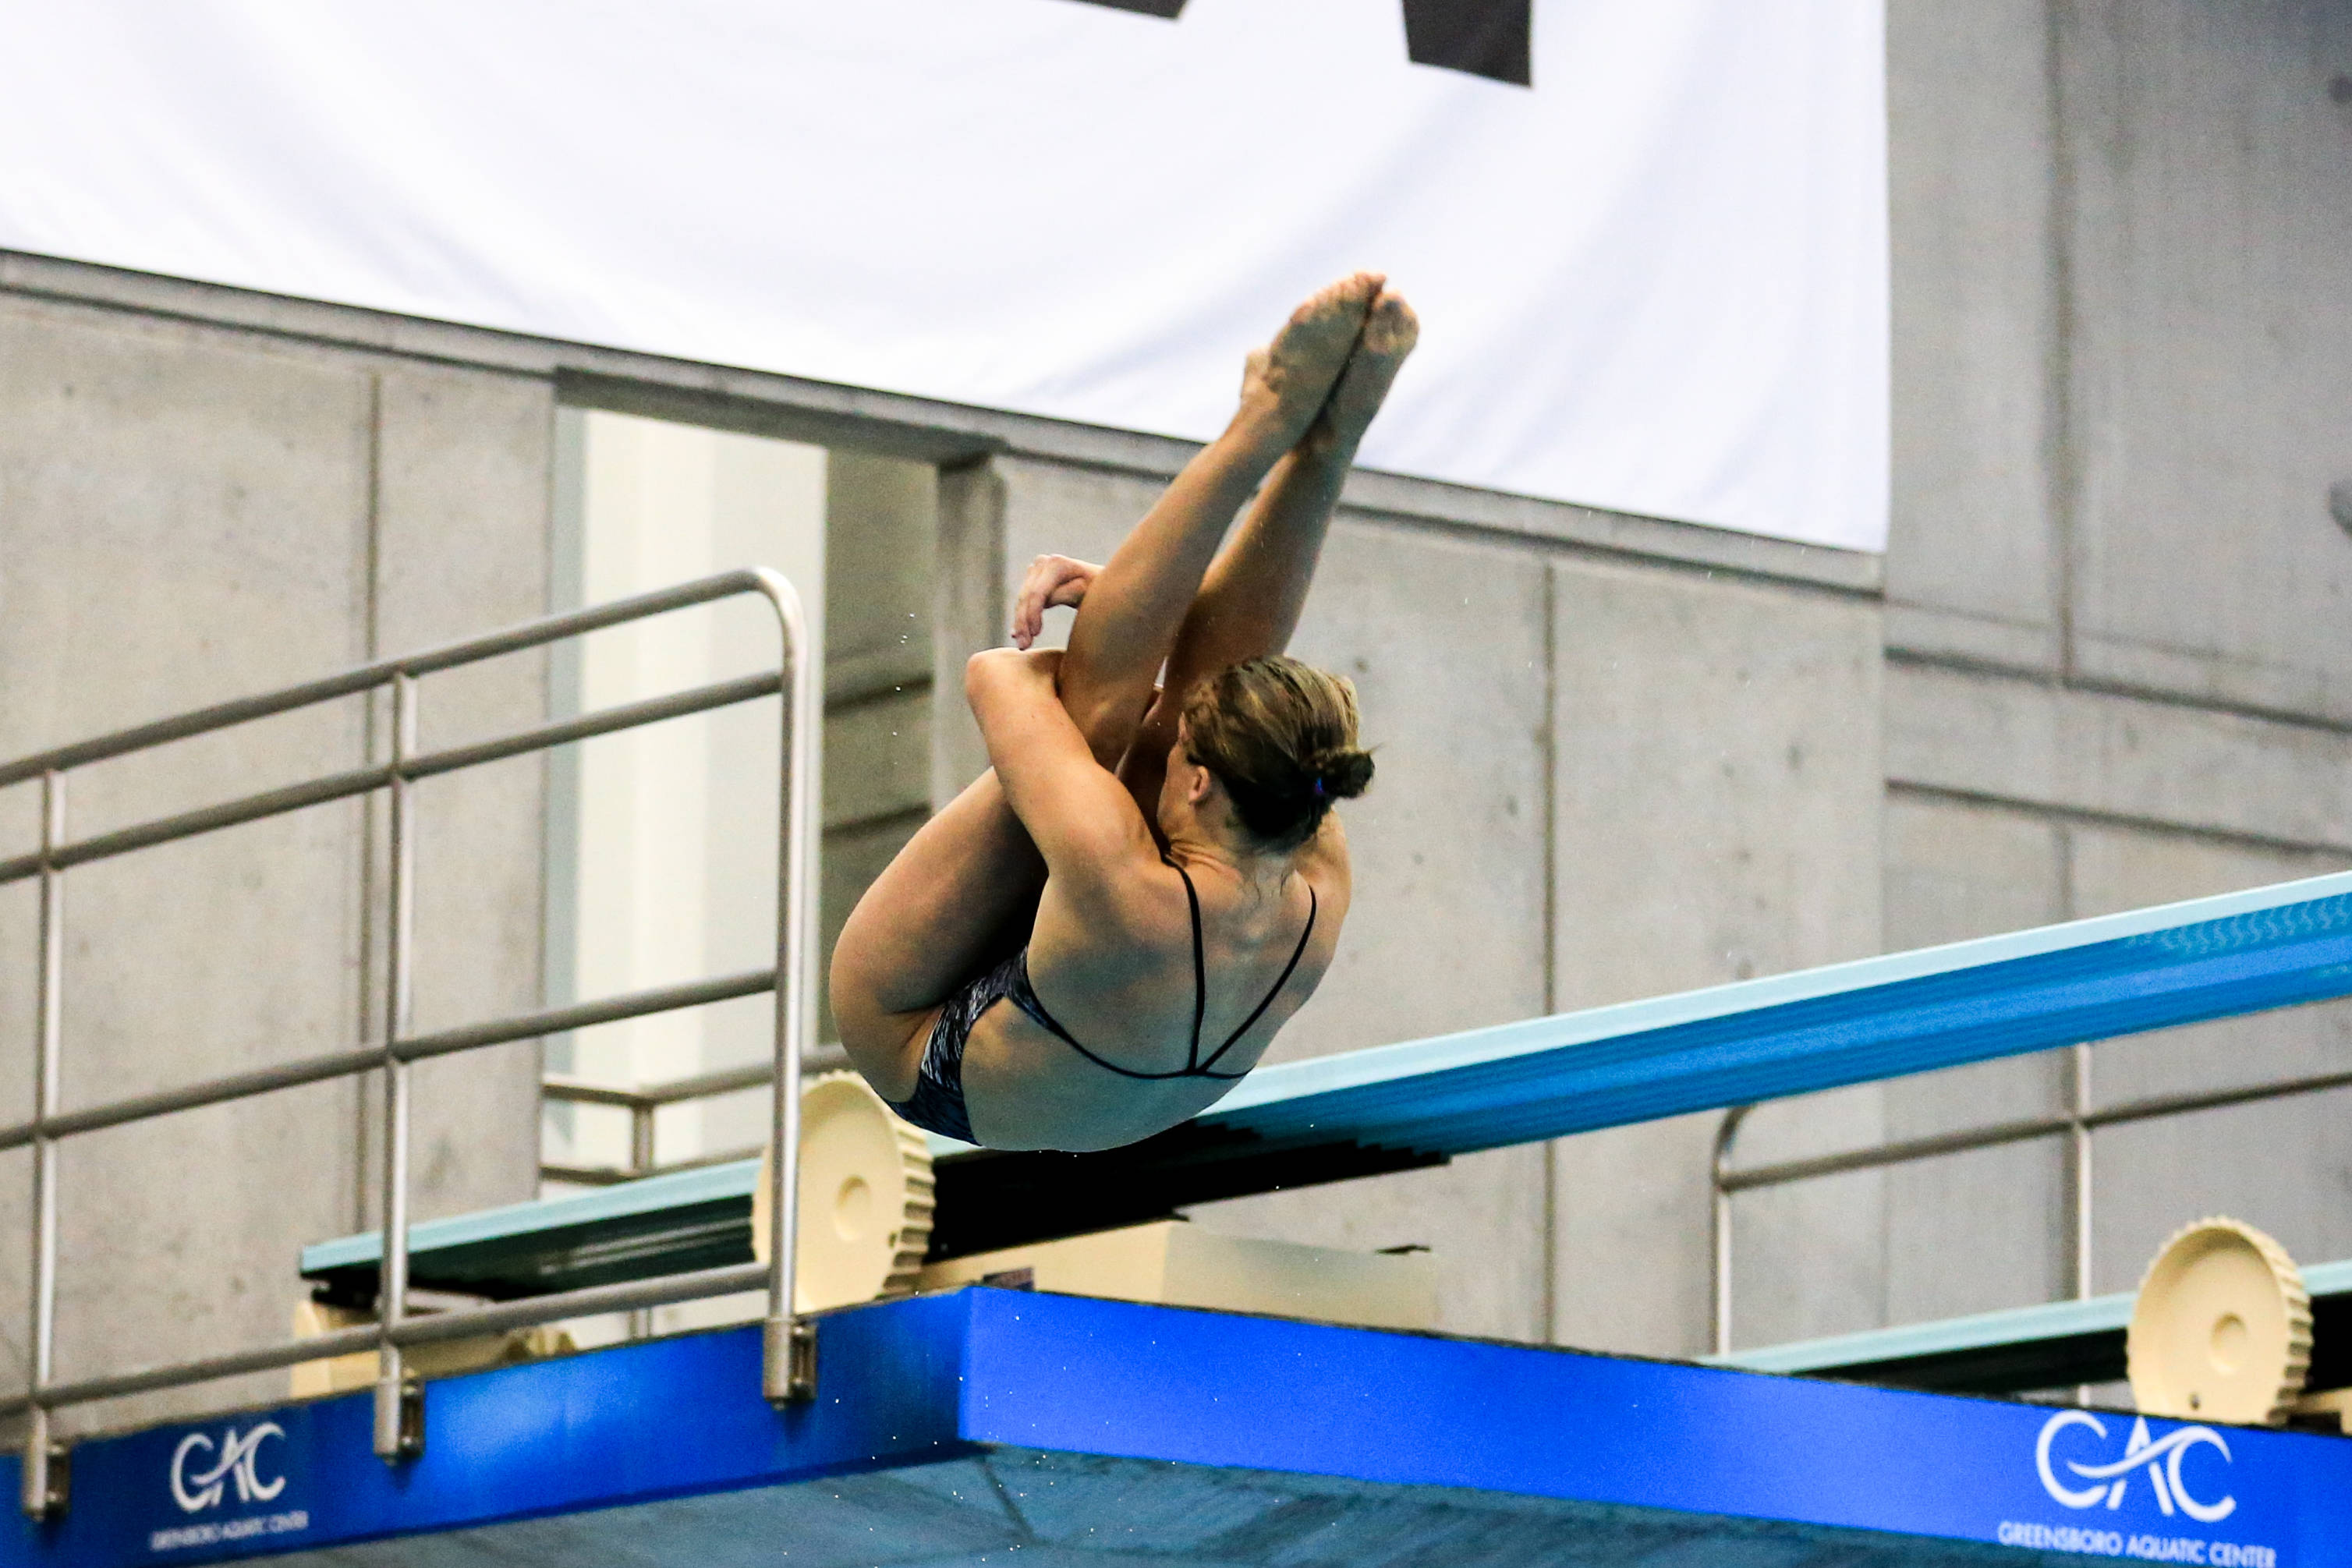 Katrina Young throws a back 1.5 in finals of 1-meter